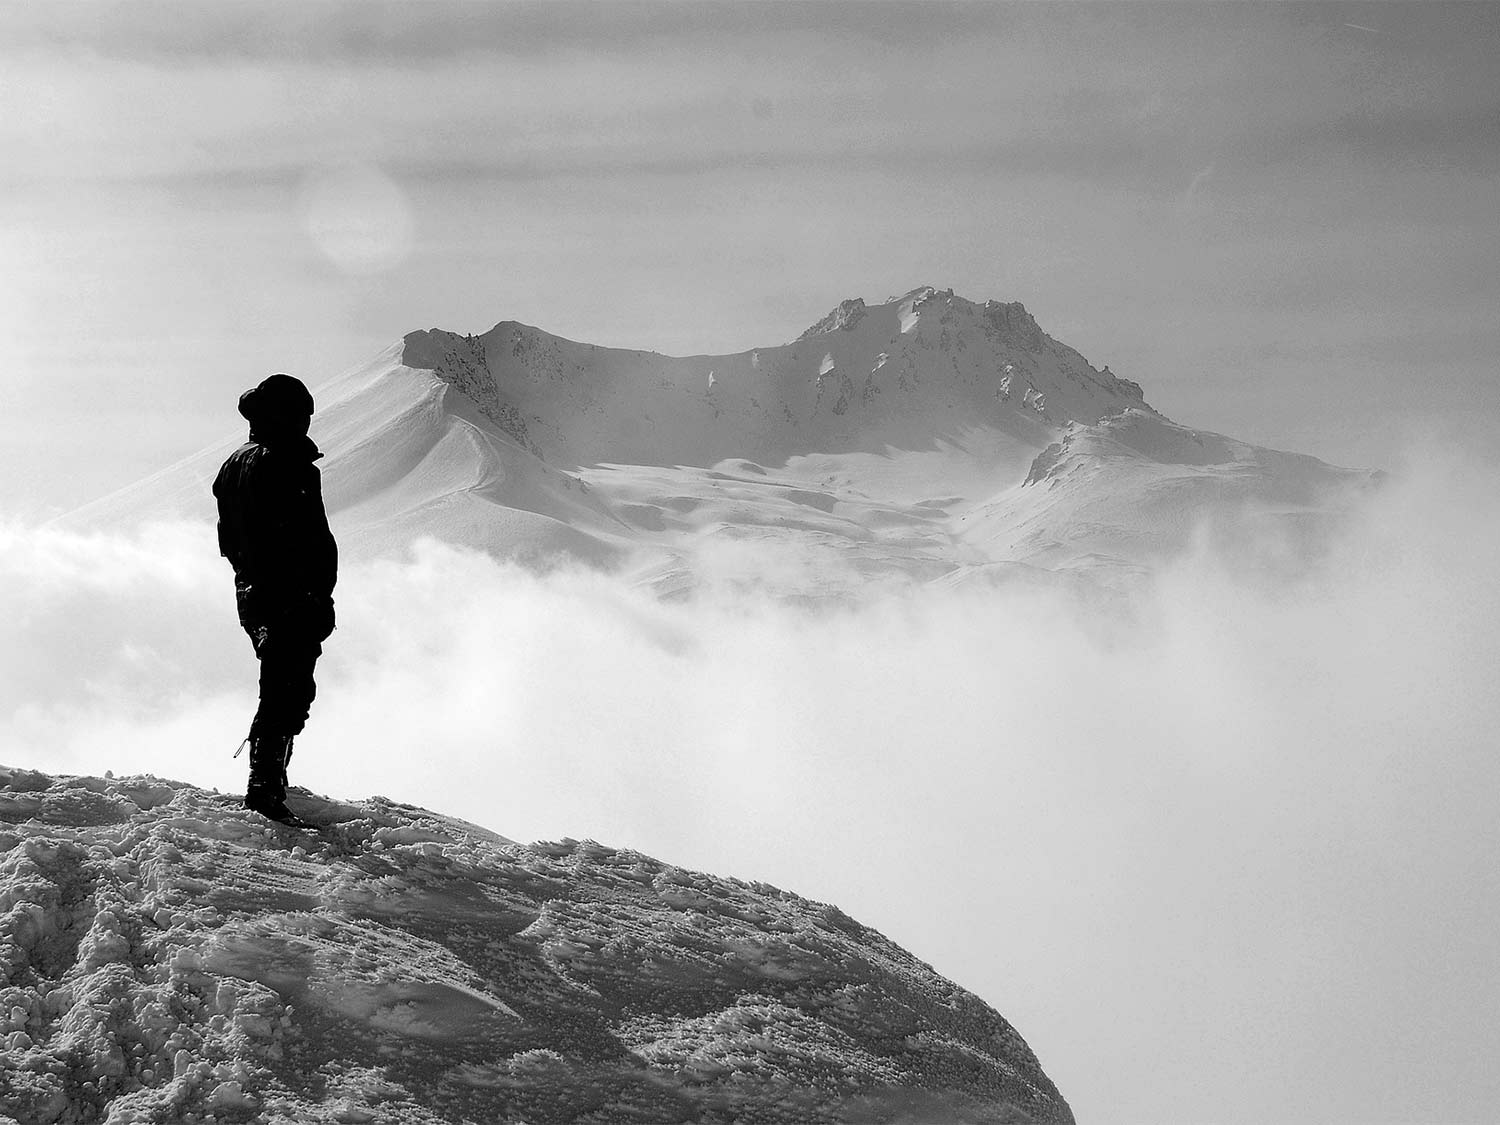 A black and white photo of a man standing on a mountainside, wearing the best soft shell jacket.